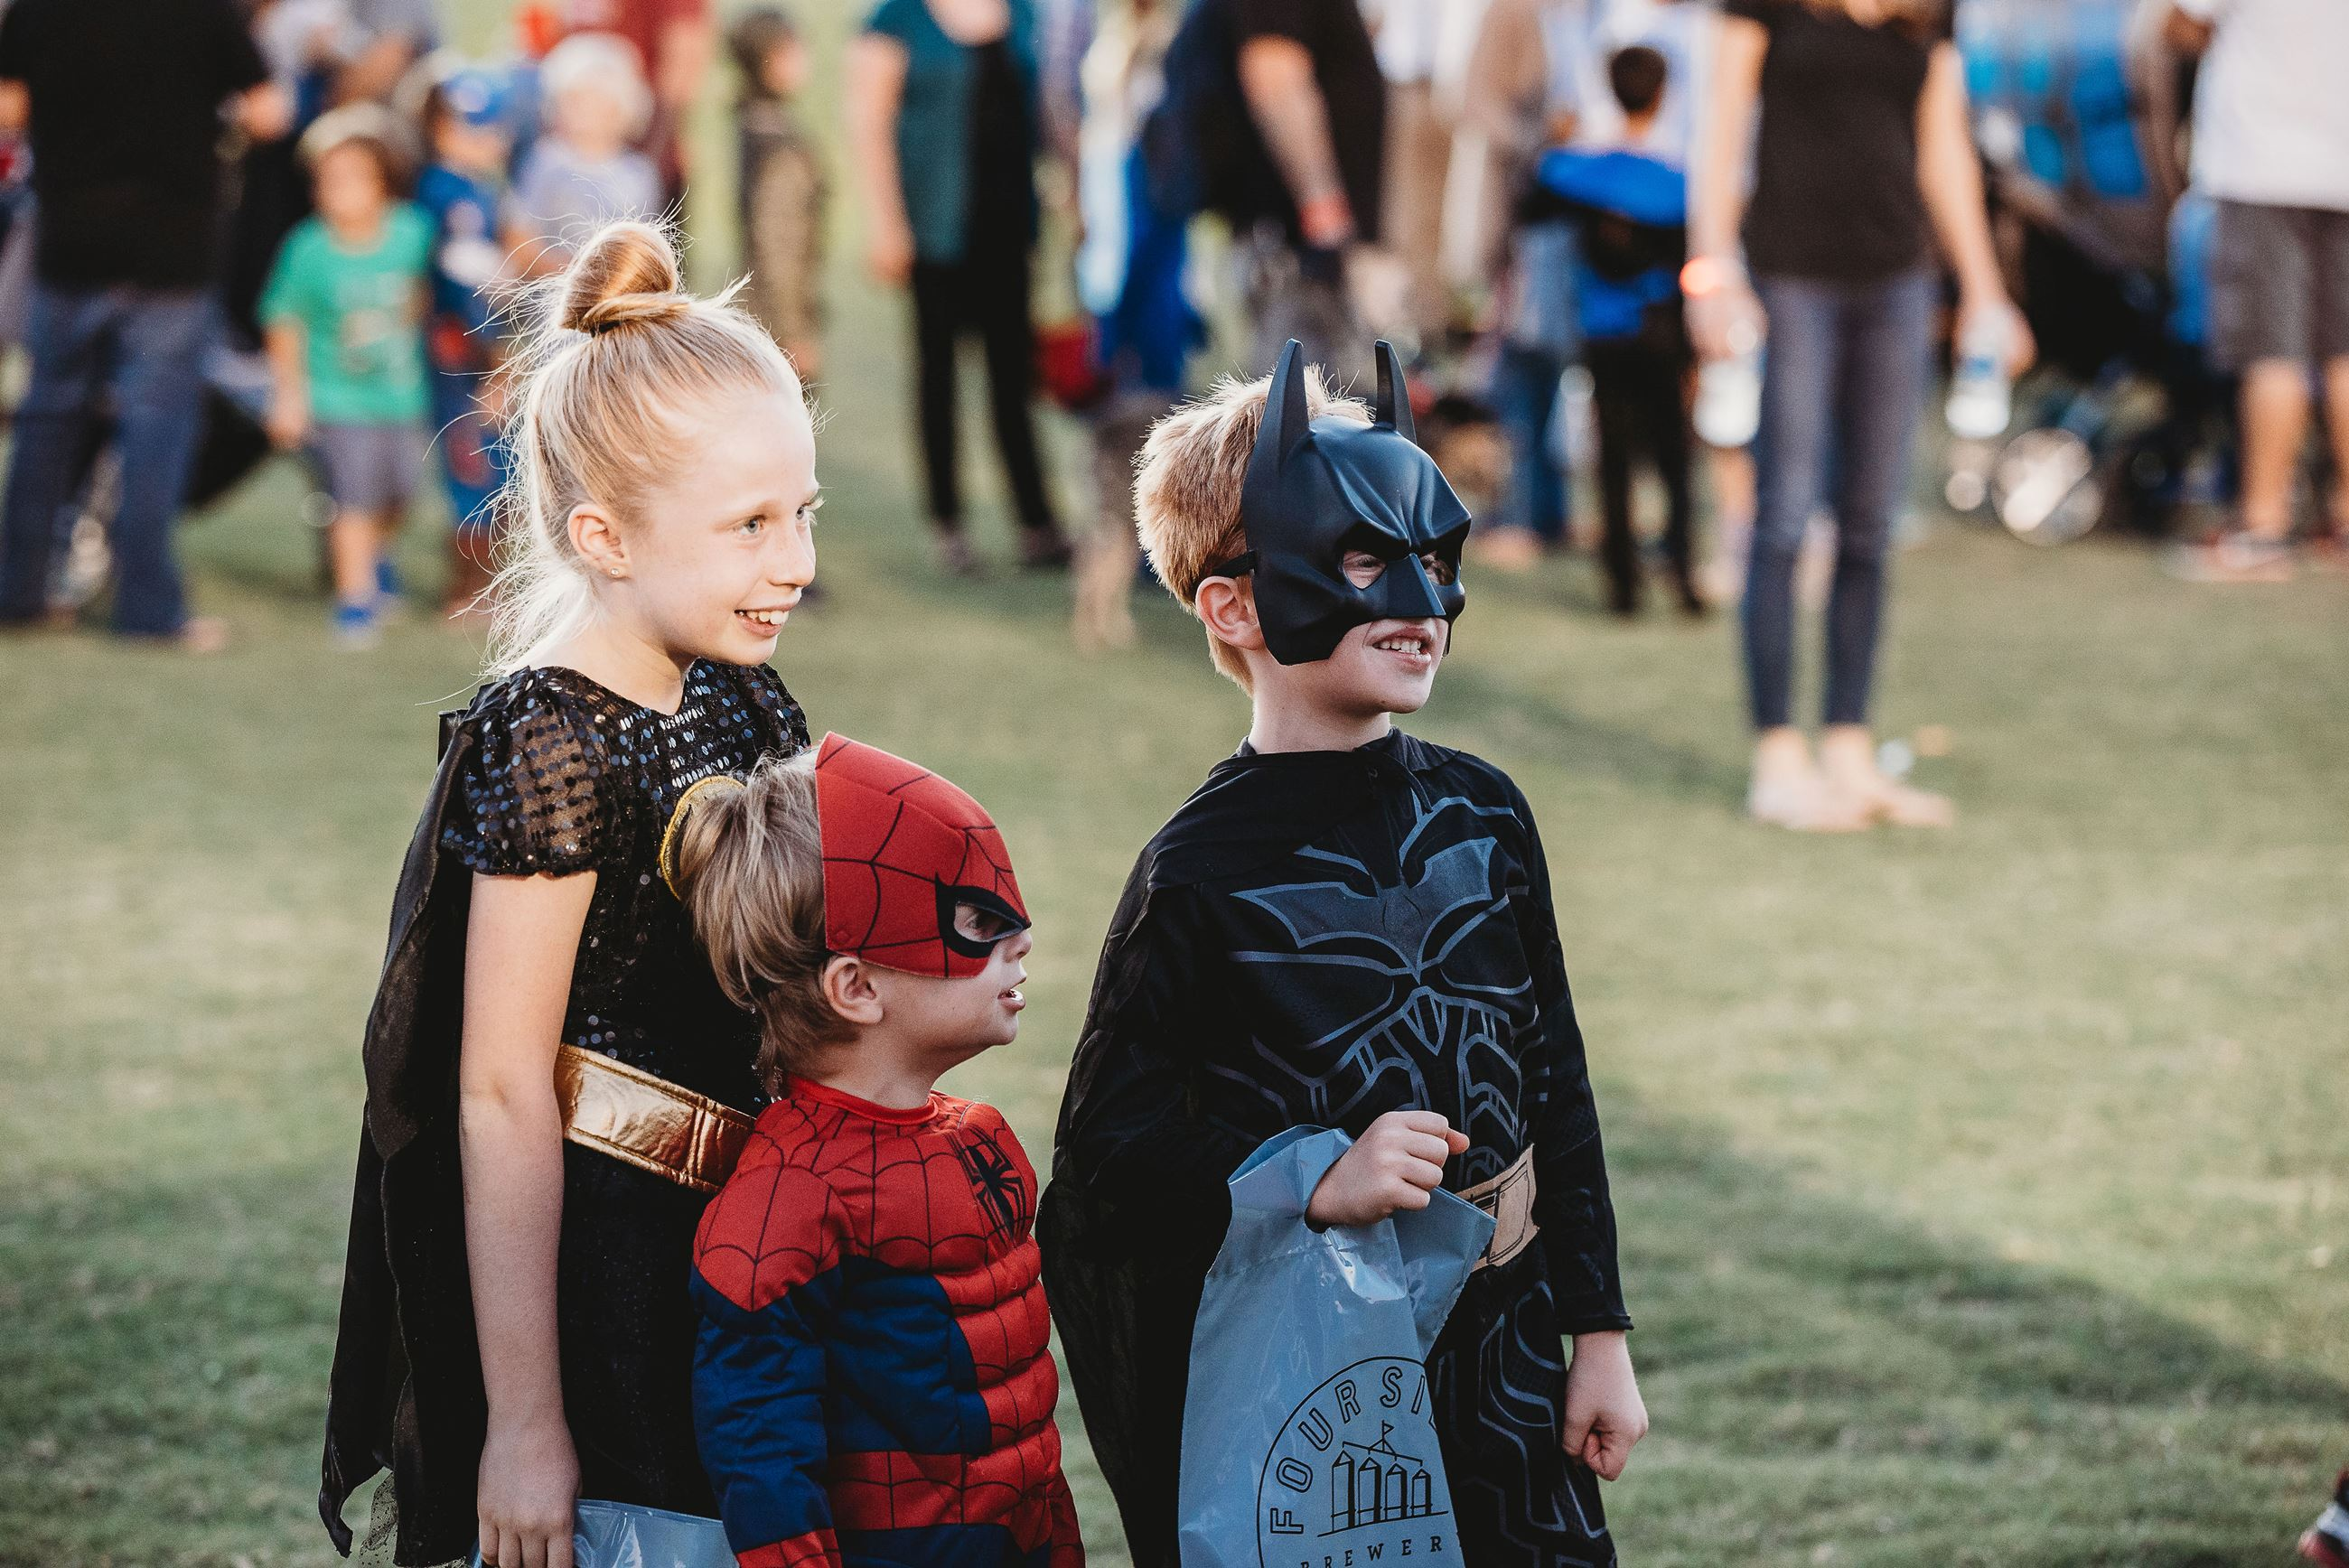 Group of Children Dressed as Super Heroes